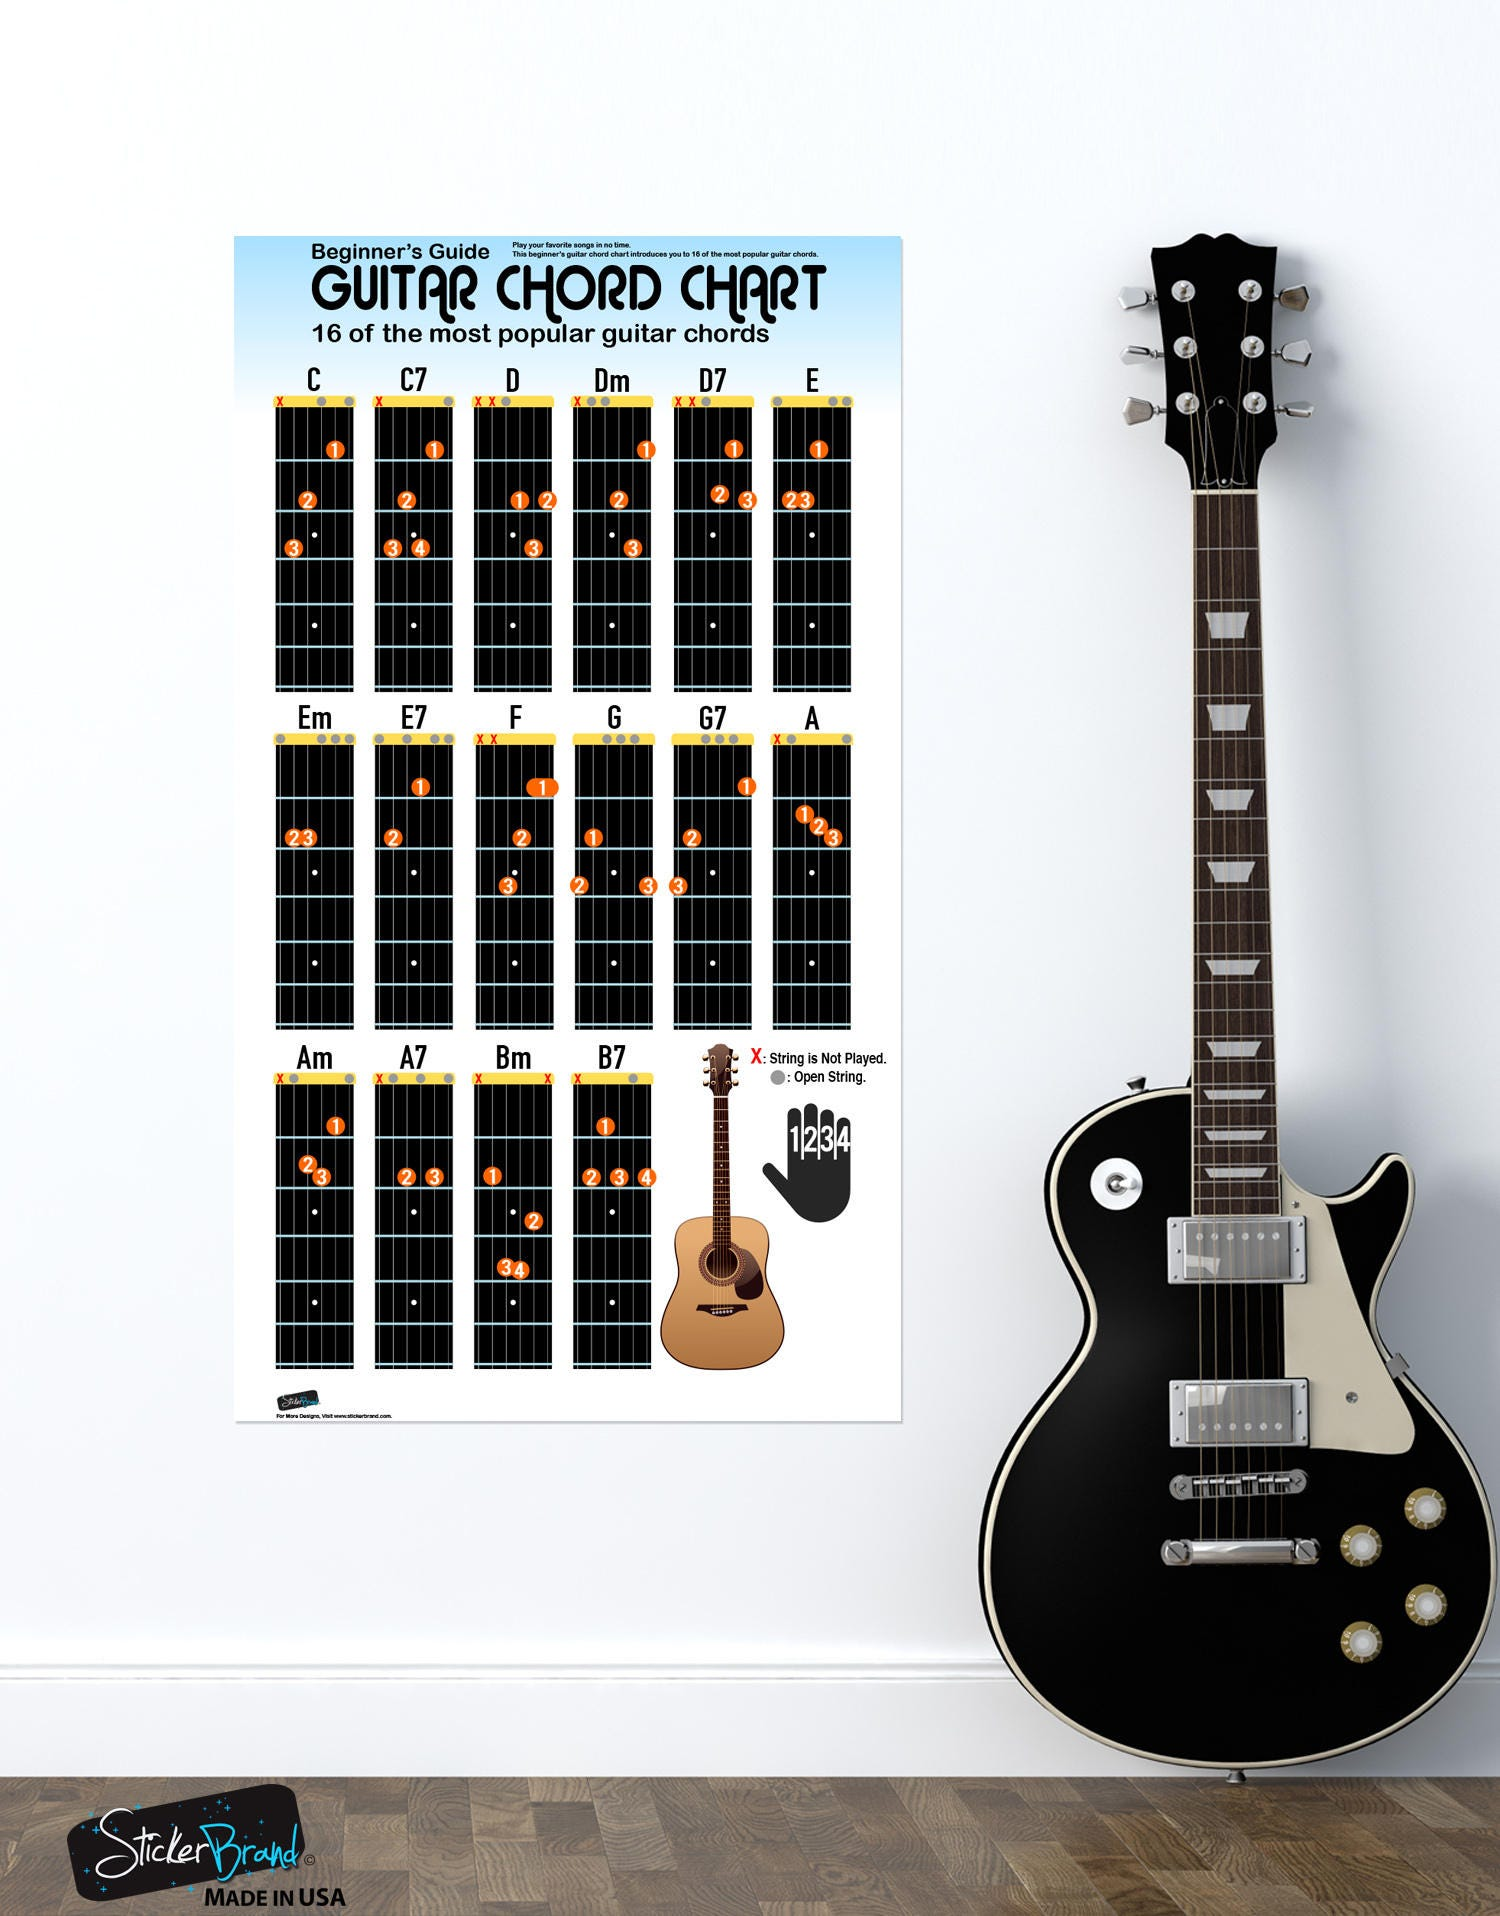 Guitar Chord Chart For Beginners 16 Popular Chords Guide Etsy